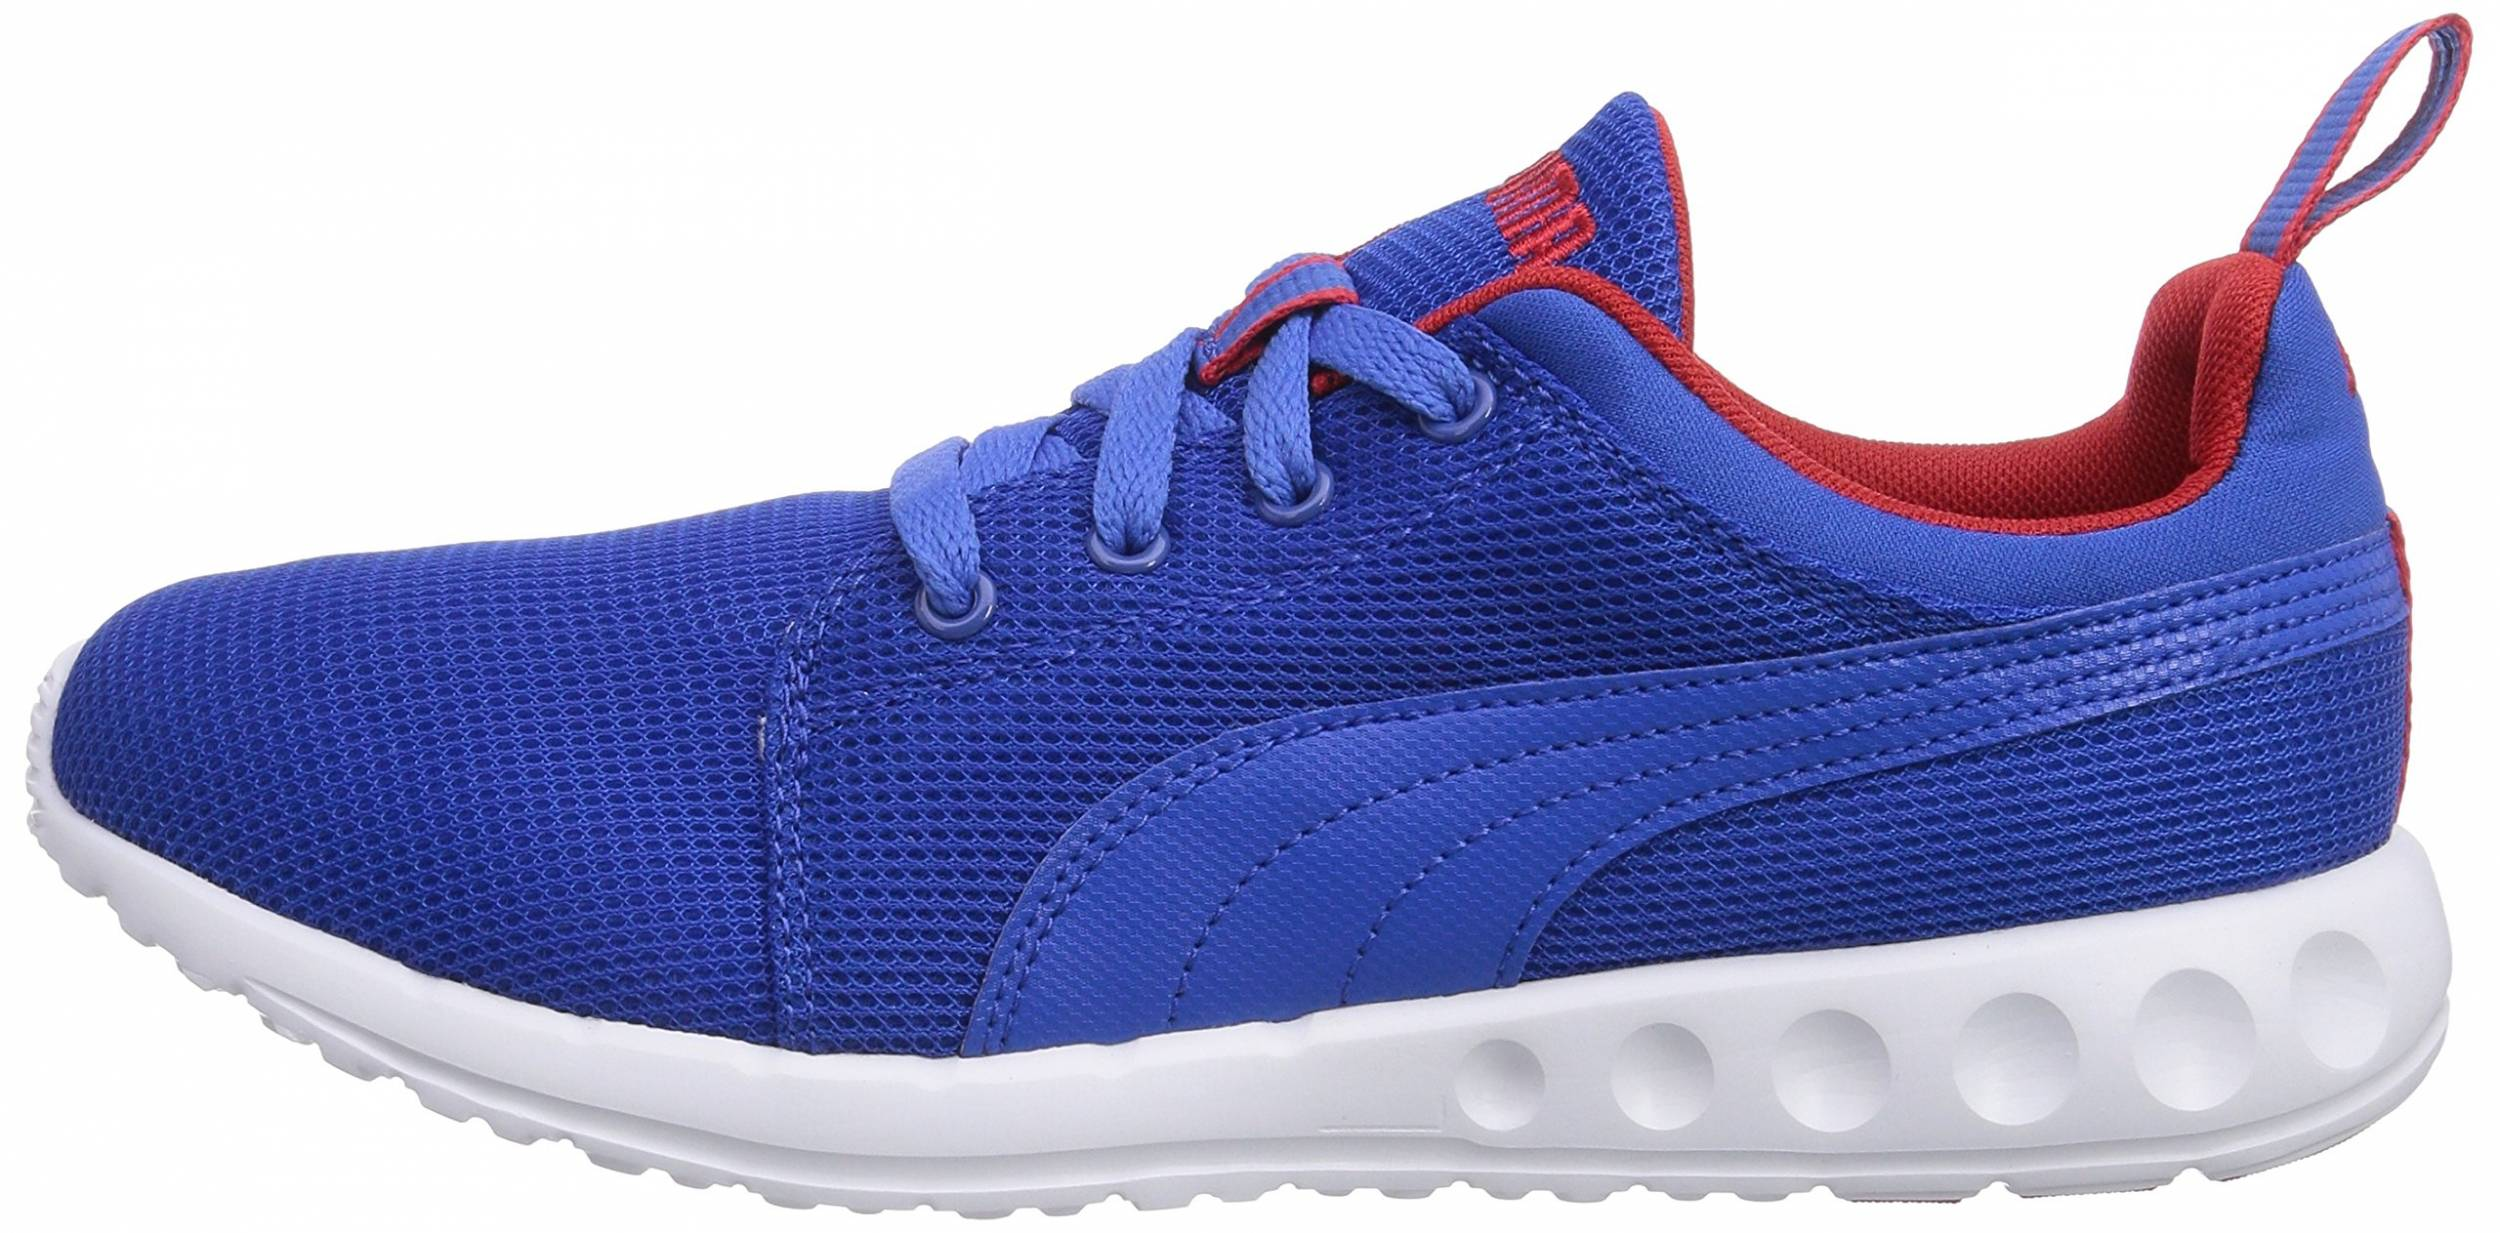 Only $40 + Review of Puma Carson Runner